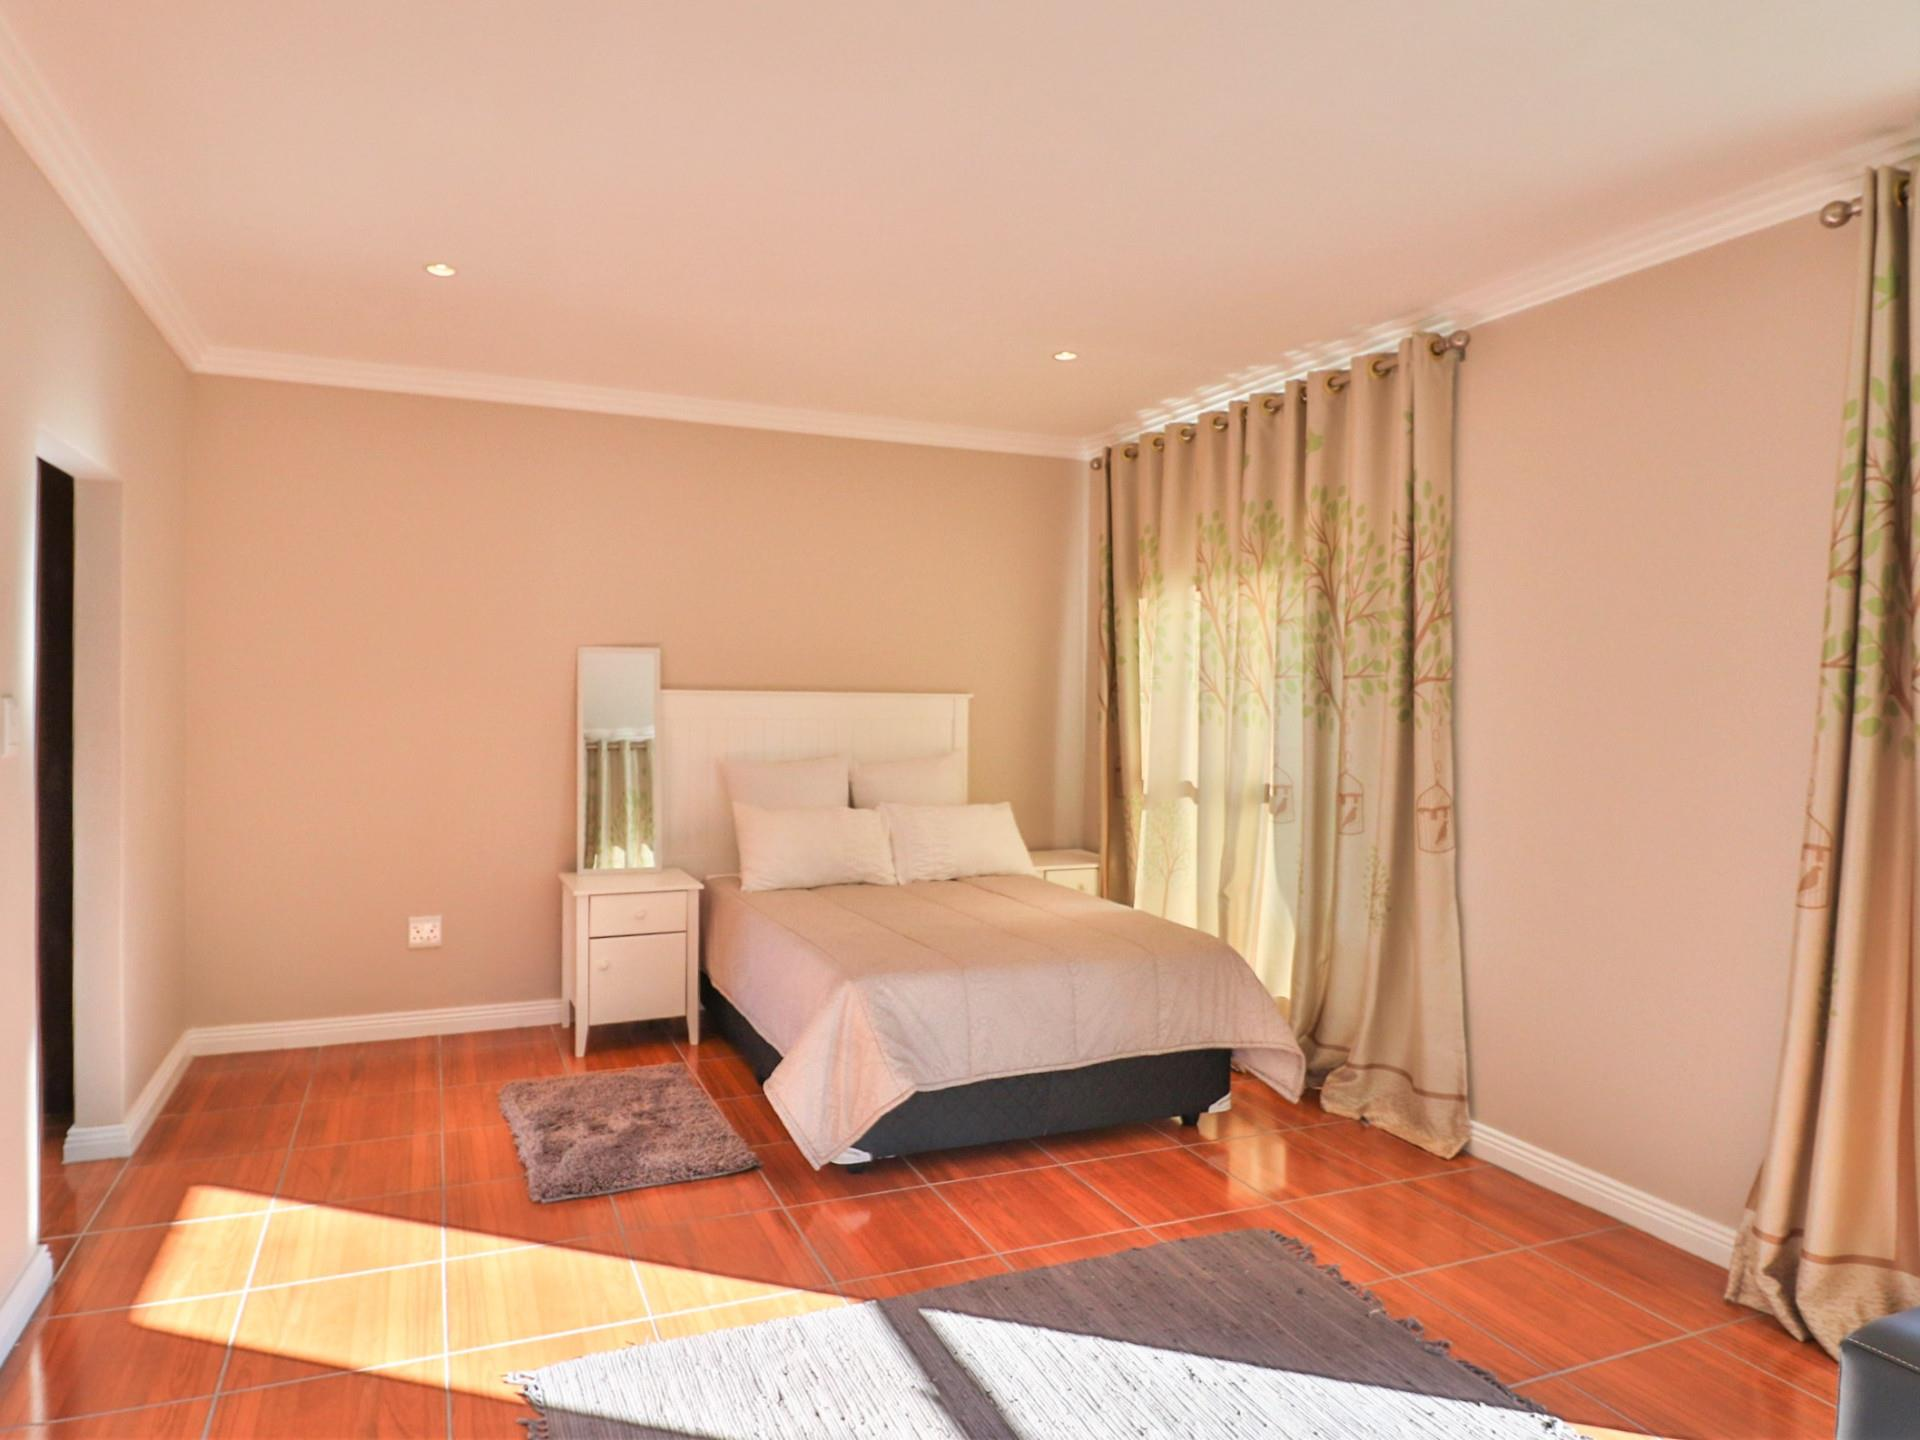 3 Bedroom House For Sale in Pezula Golf Estate